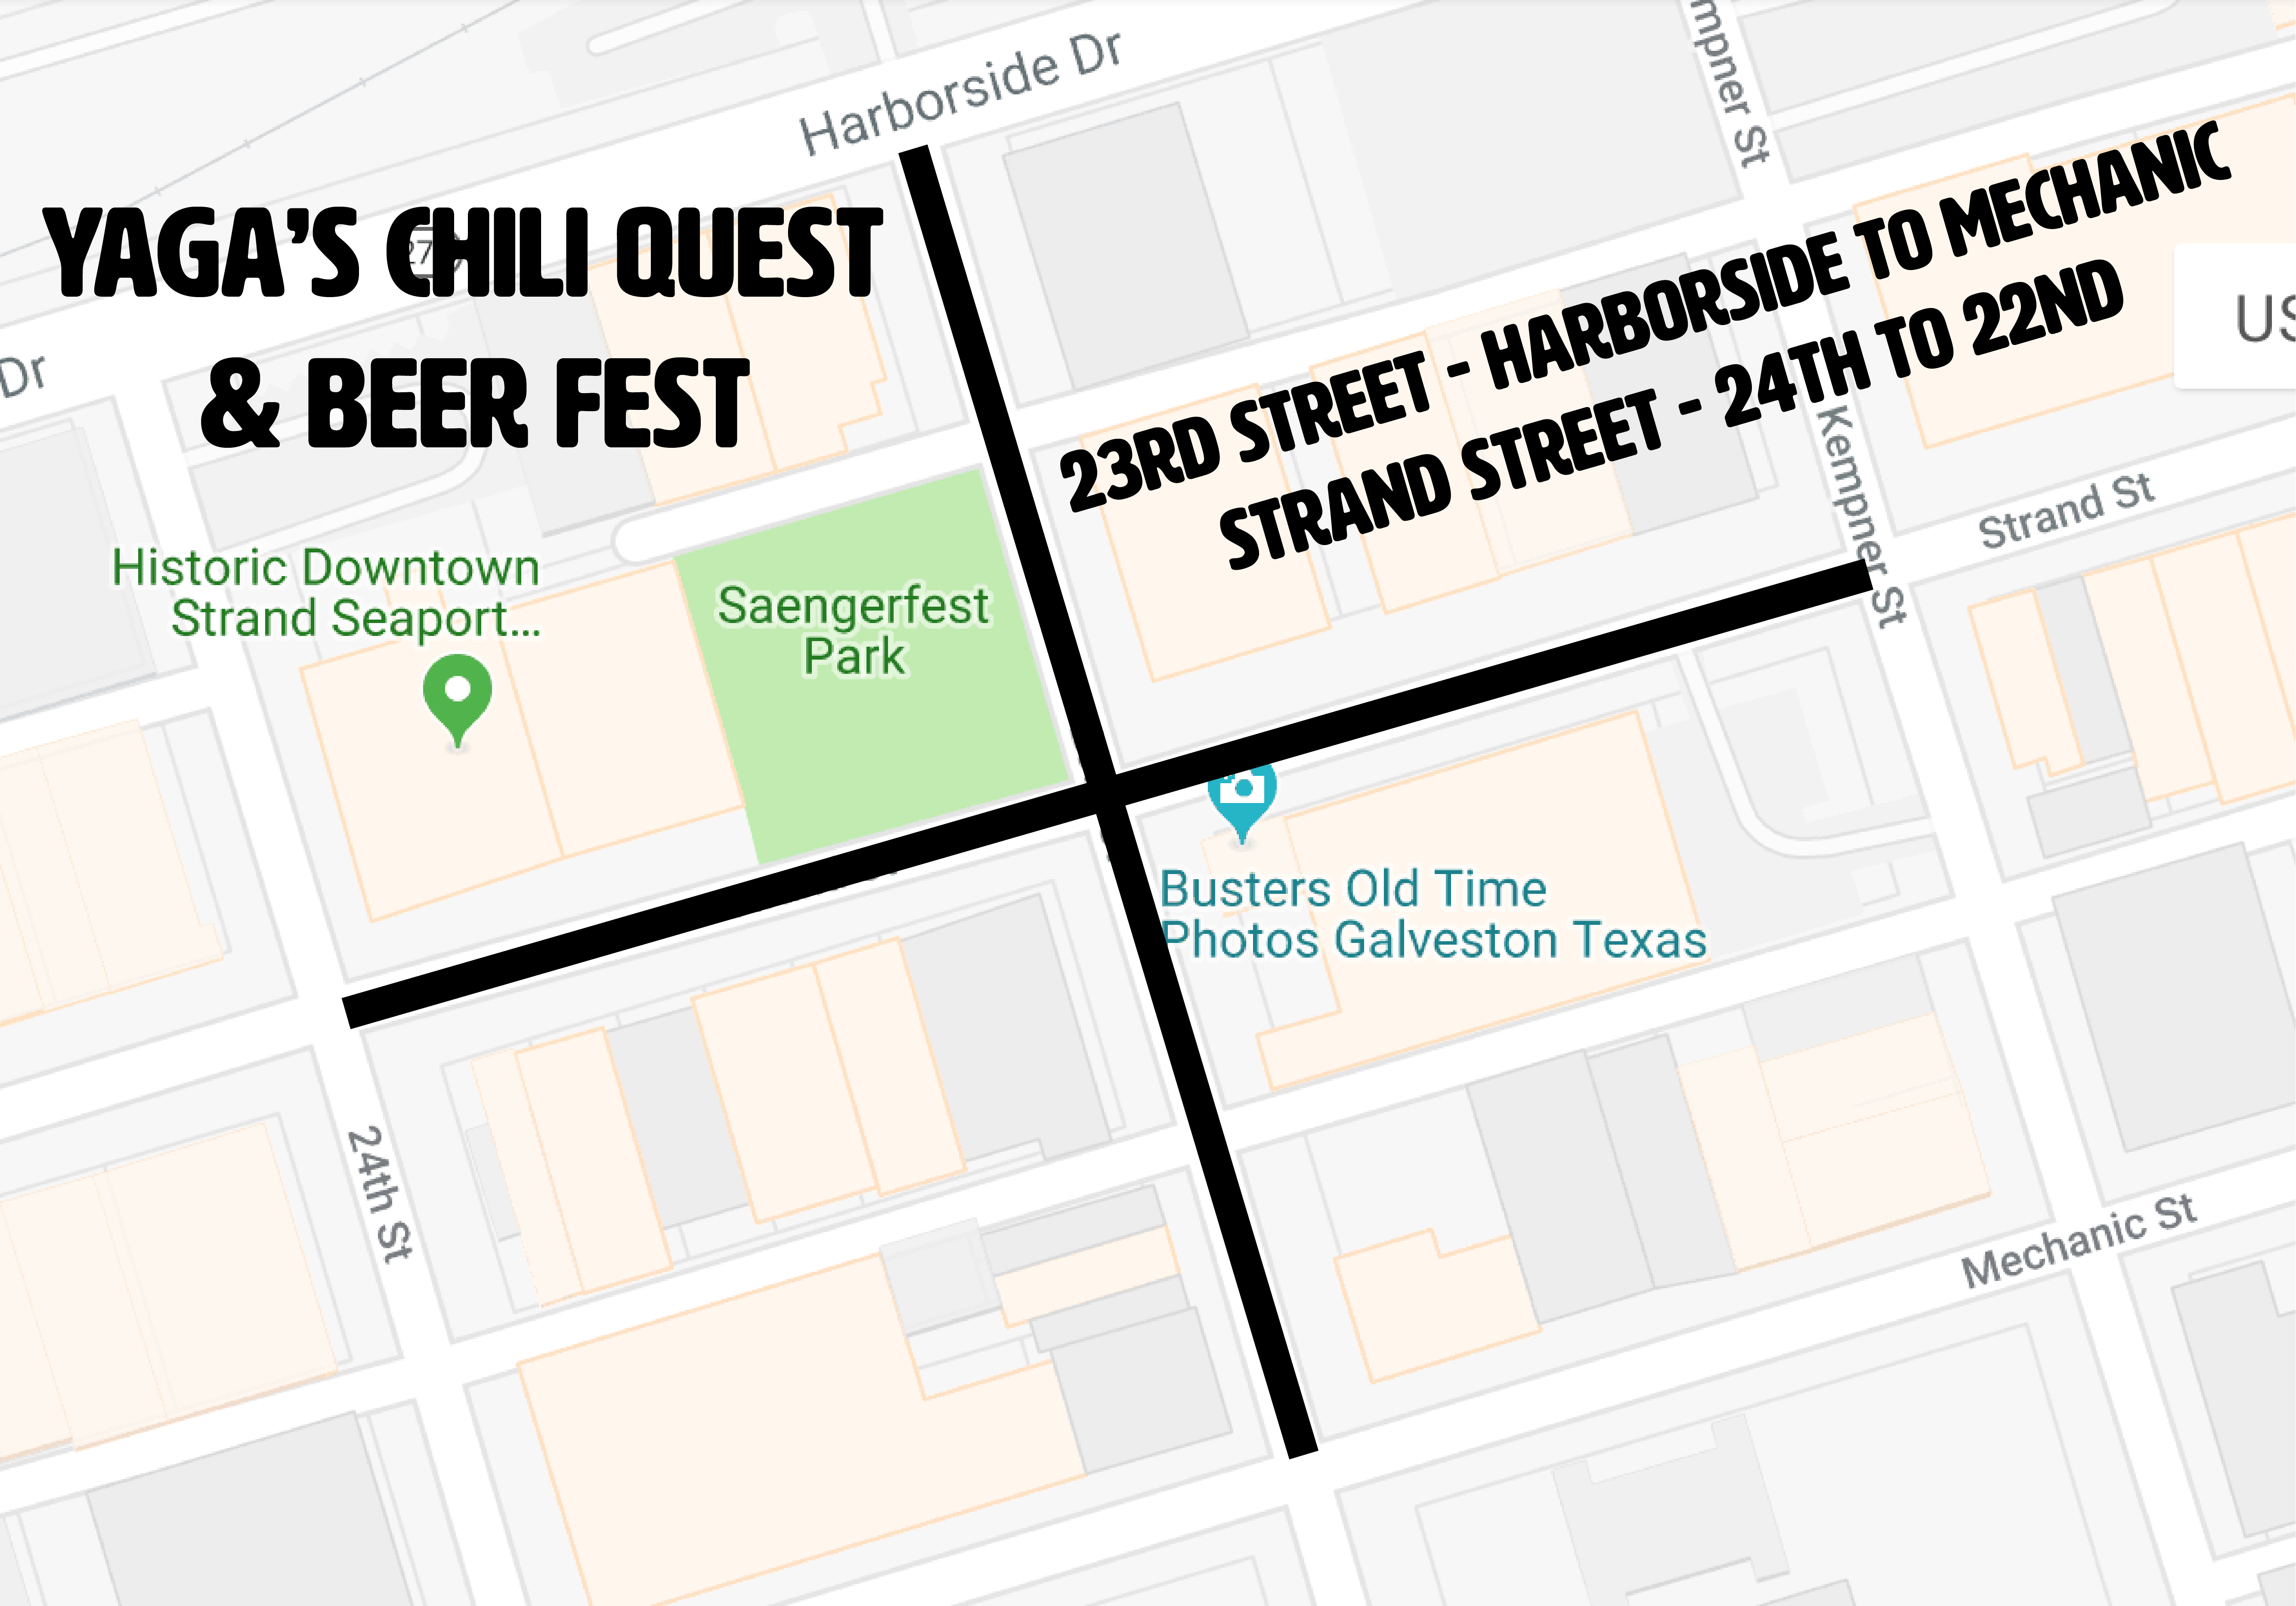 VIP Sweepstake - Yaga's Chili Quest and Beer Fest